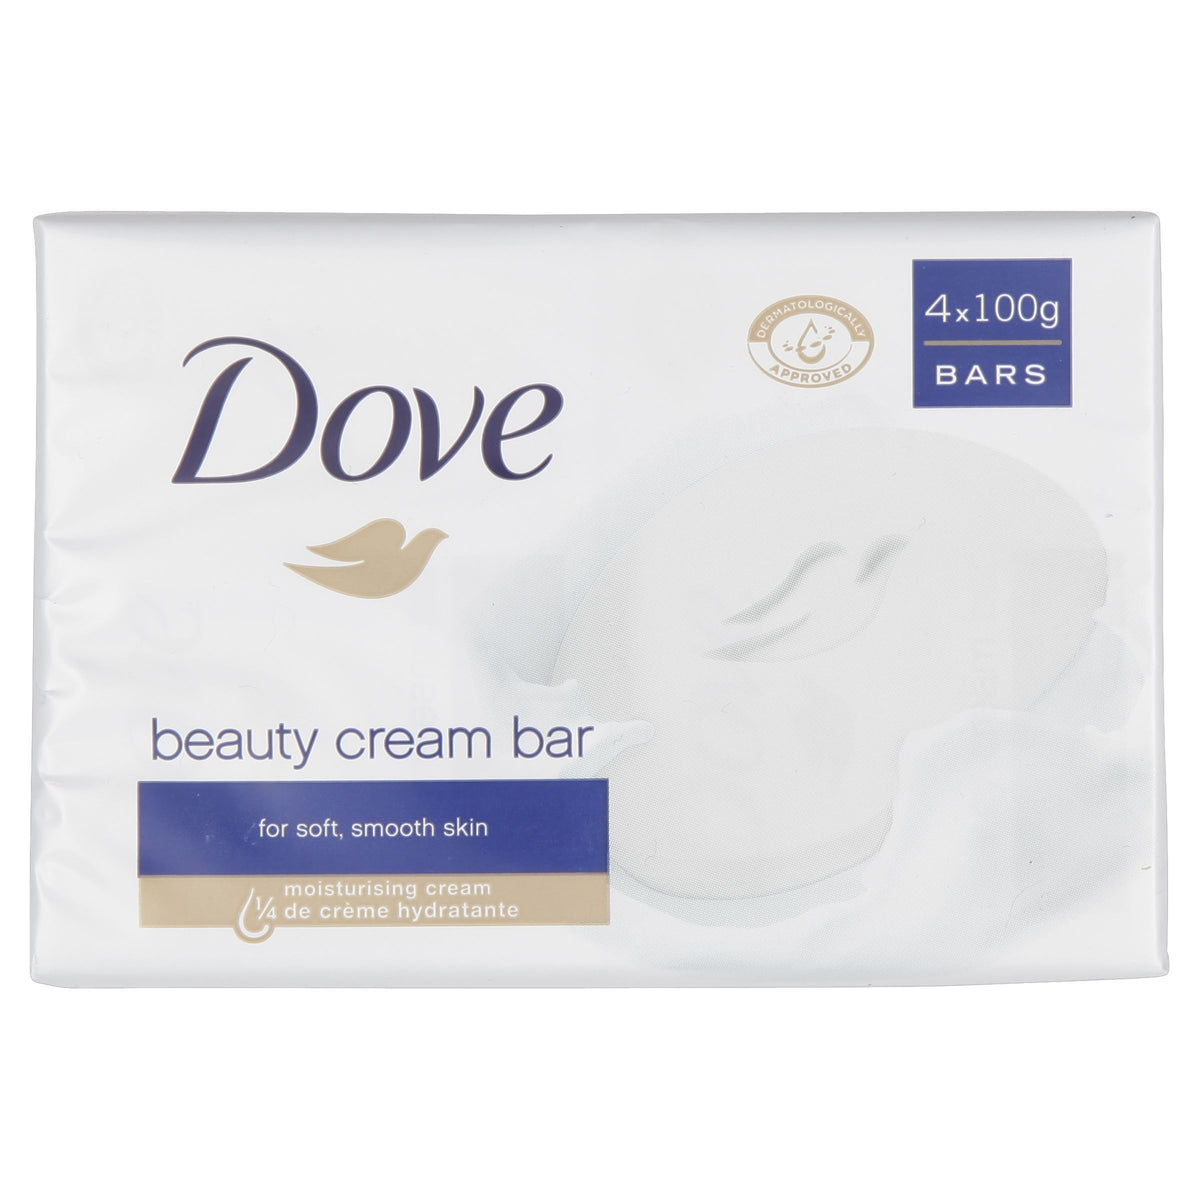 Dove Beauty Cream Bar Soap - 48 x 100g bars